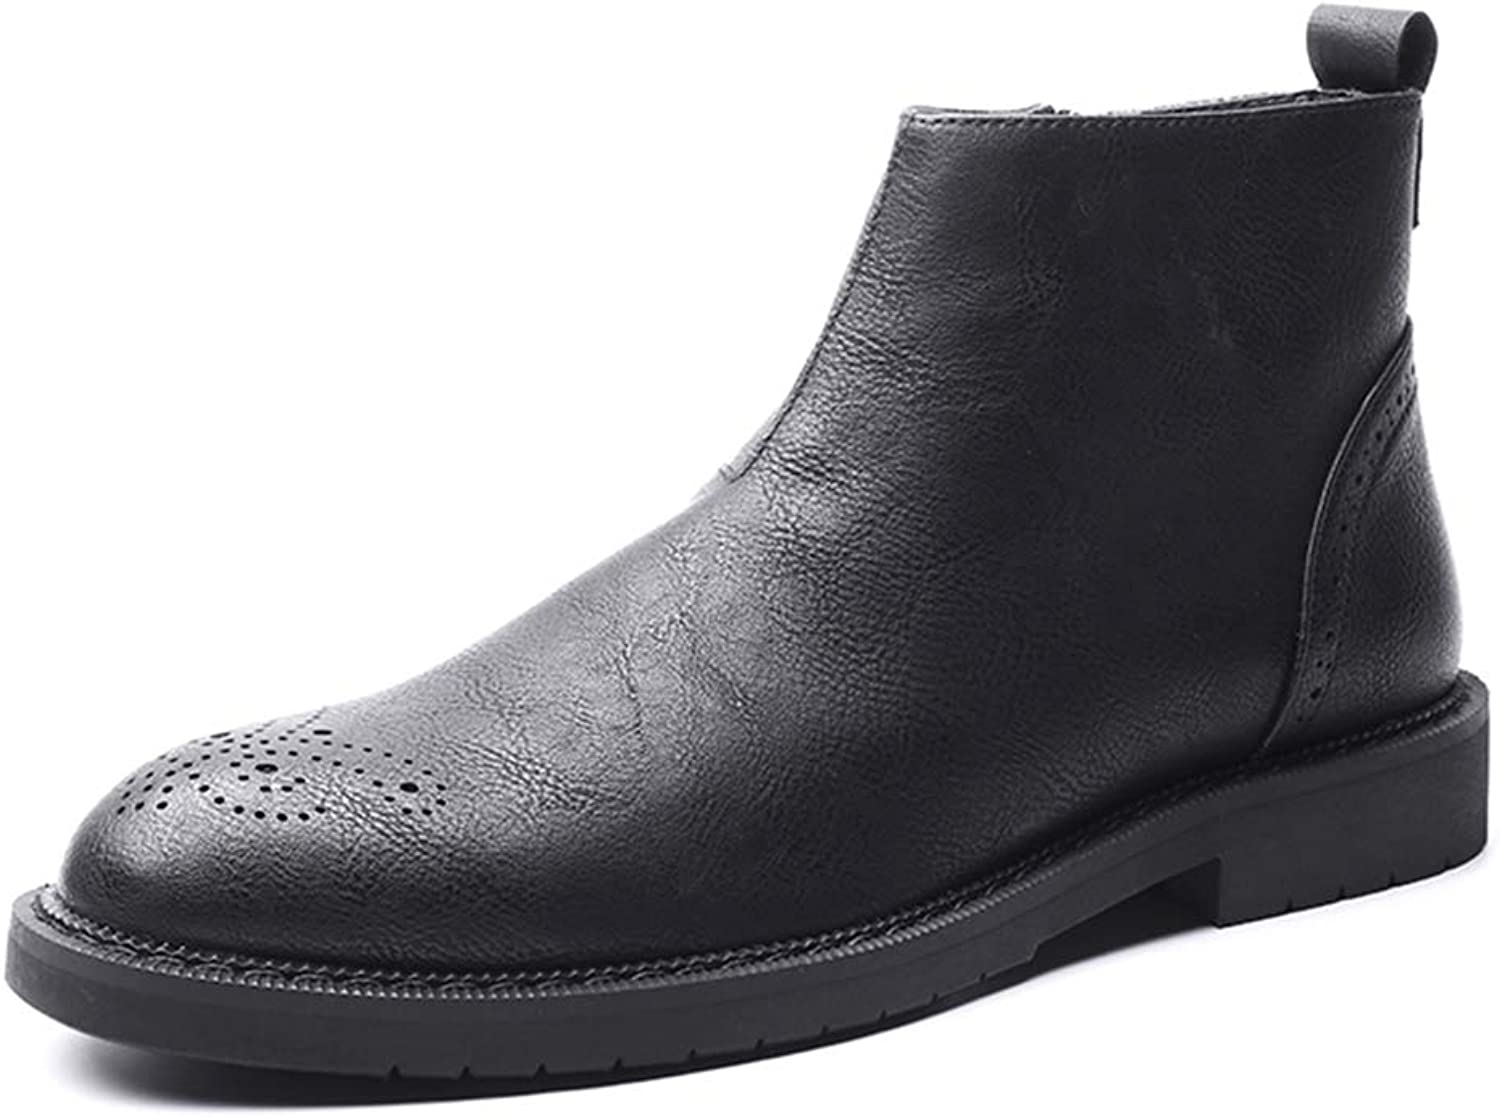 Men Dress Zip Boots Formal Leather Ankle Booties